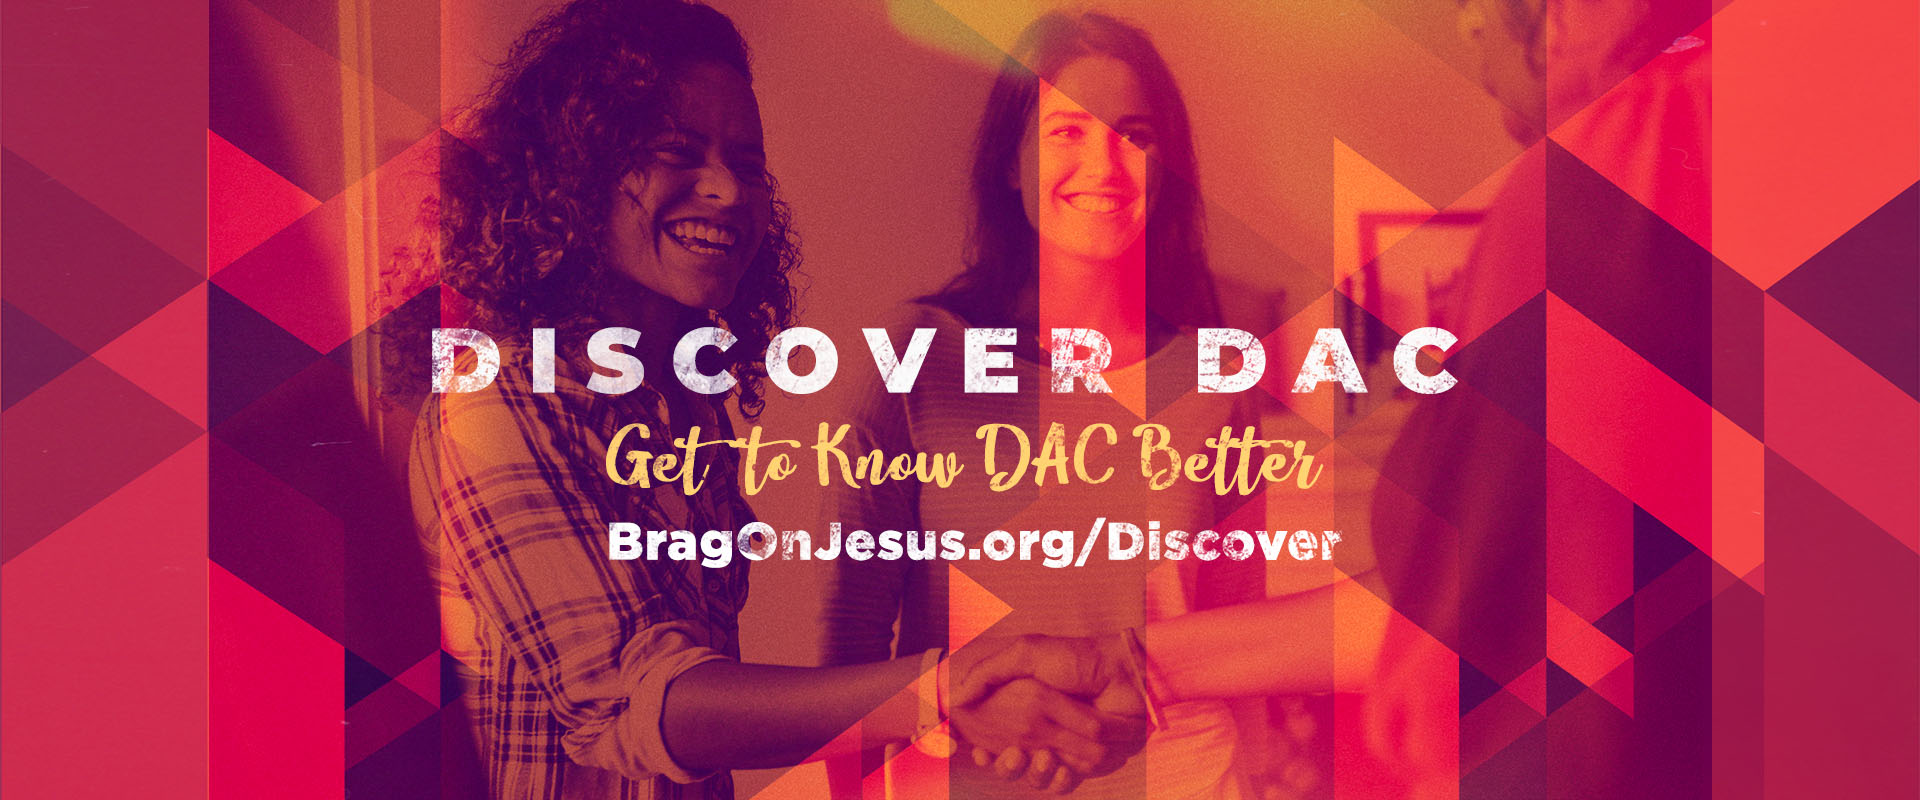 Discover-DAC-2021-rs-ffw